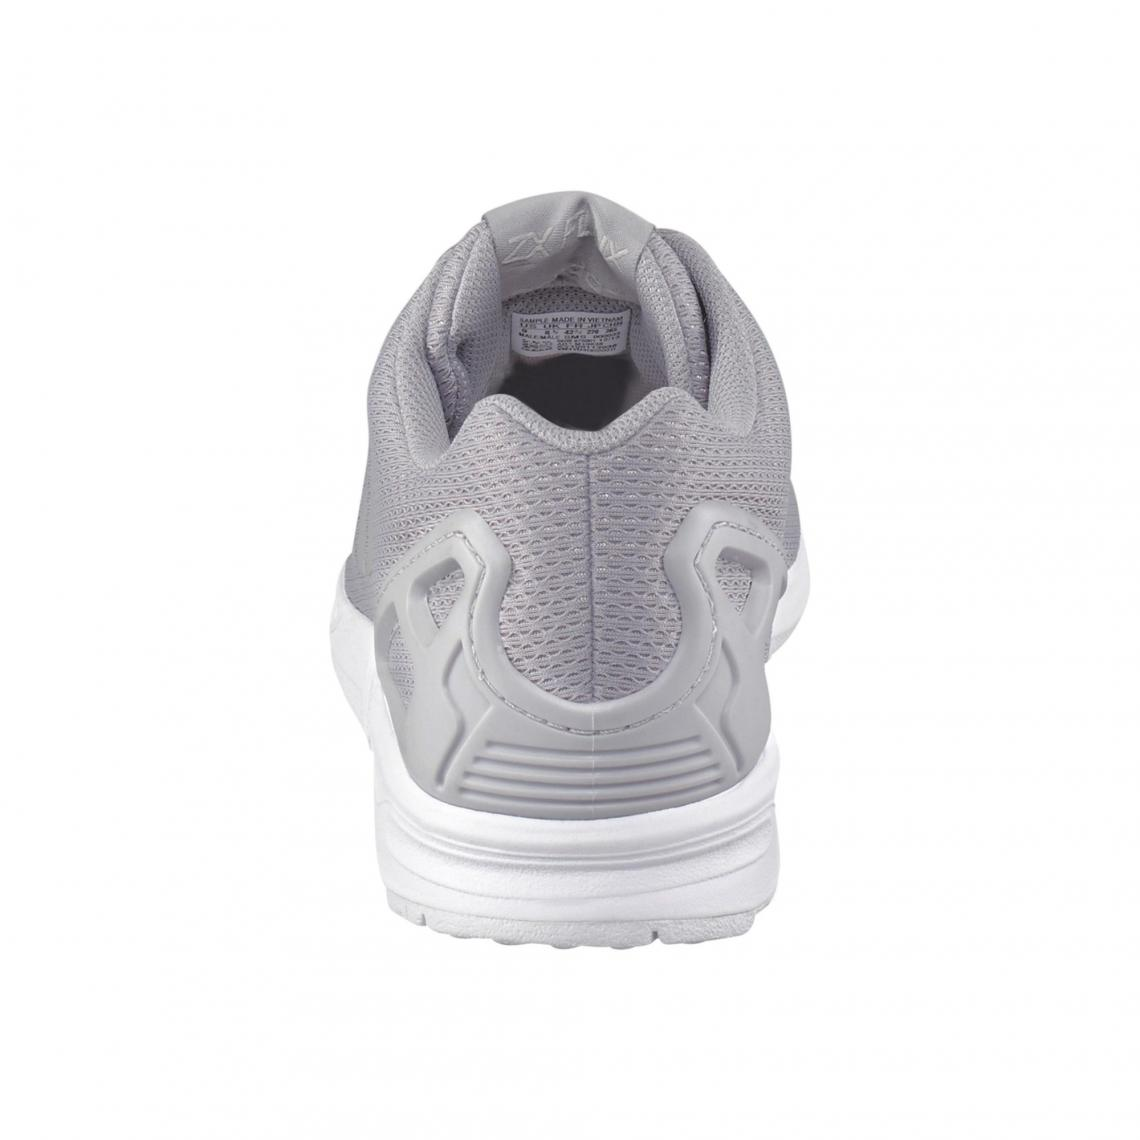 new style c7bf7 b0e87 Toutes les chaussures Adidas